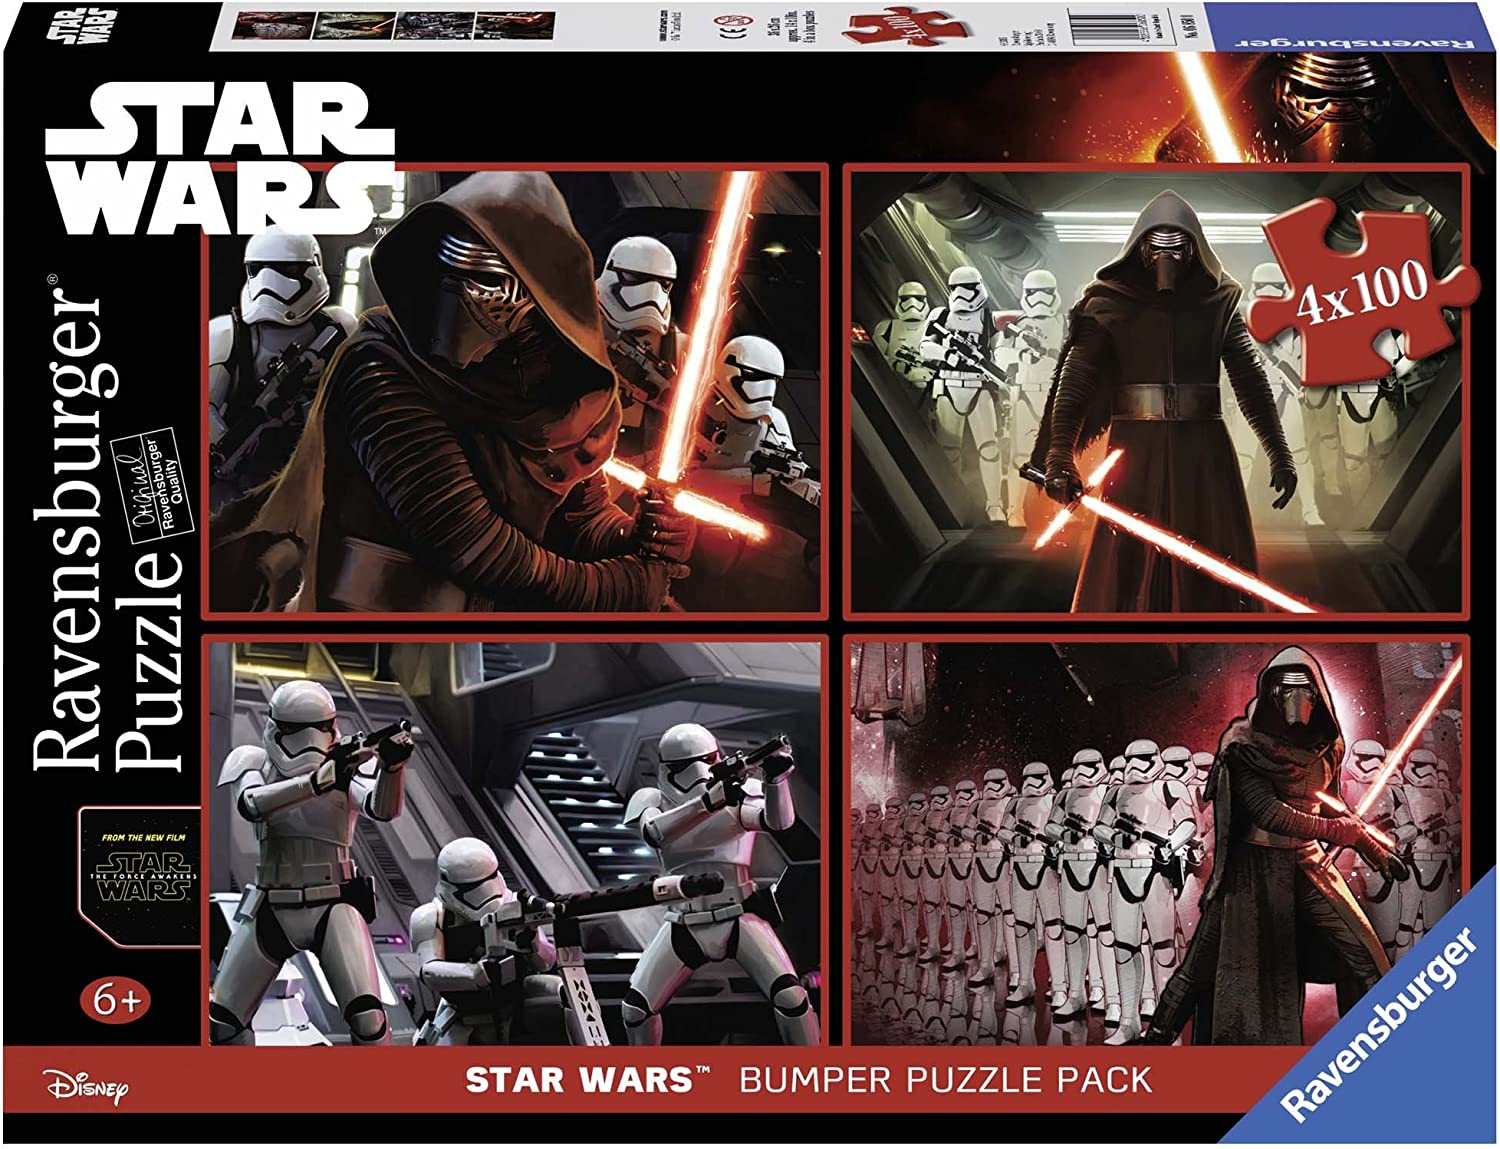 Star Wars Classic Puzzle 4 X 100 Pieces